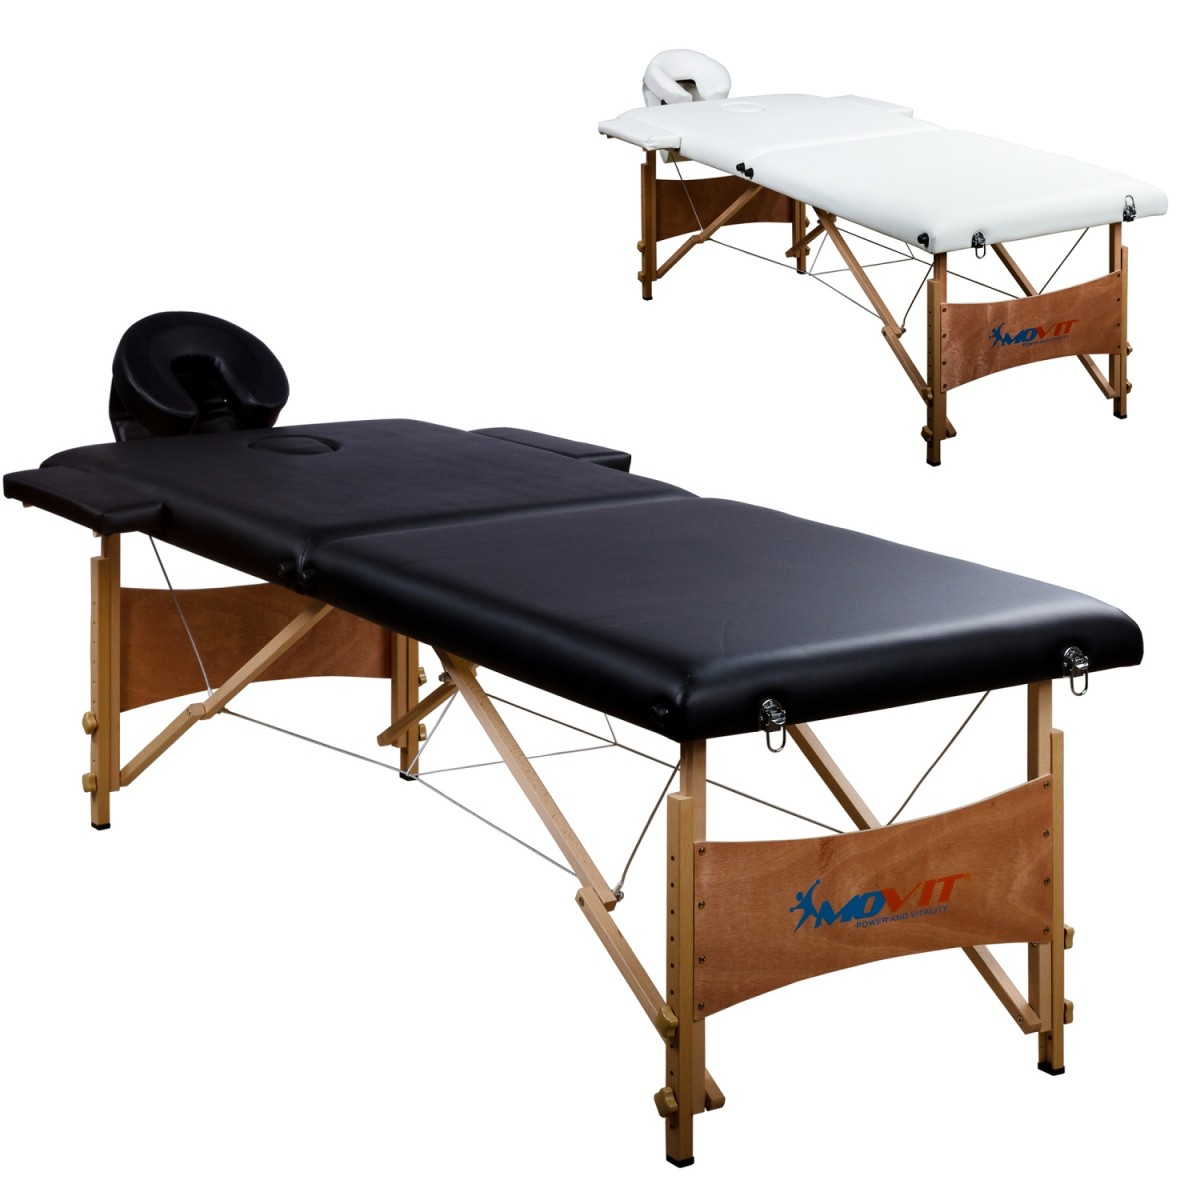 movit mobile massageliege massagebank schwarz massage wellness freizeit. Black Bedroom Furniture Sets. Home Design Ideas